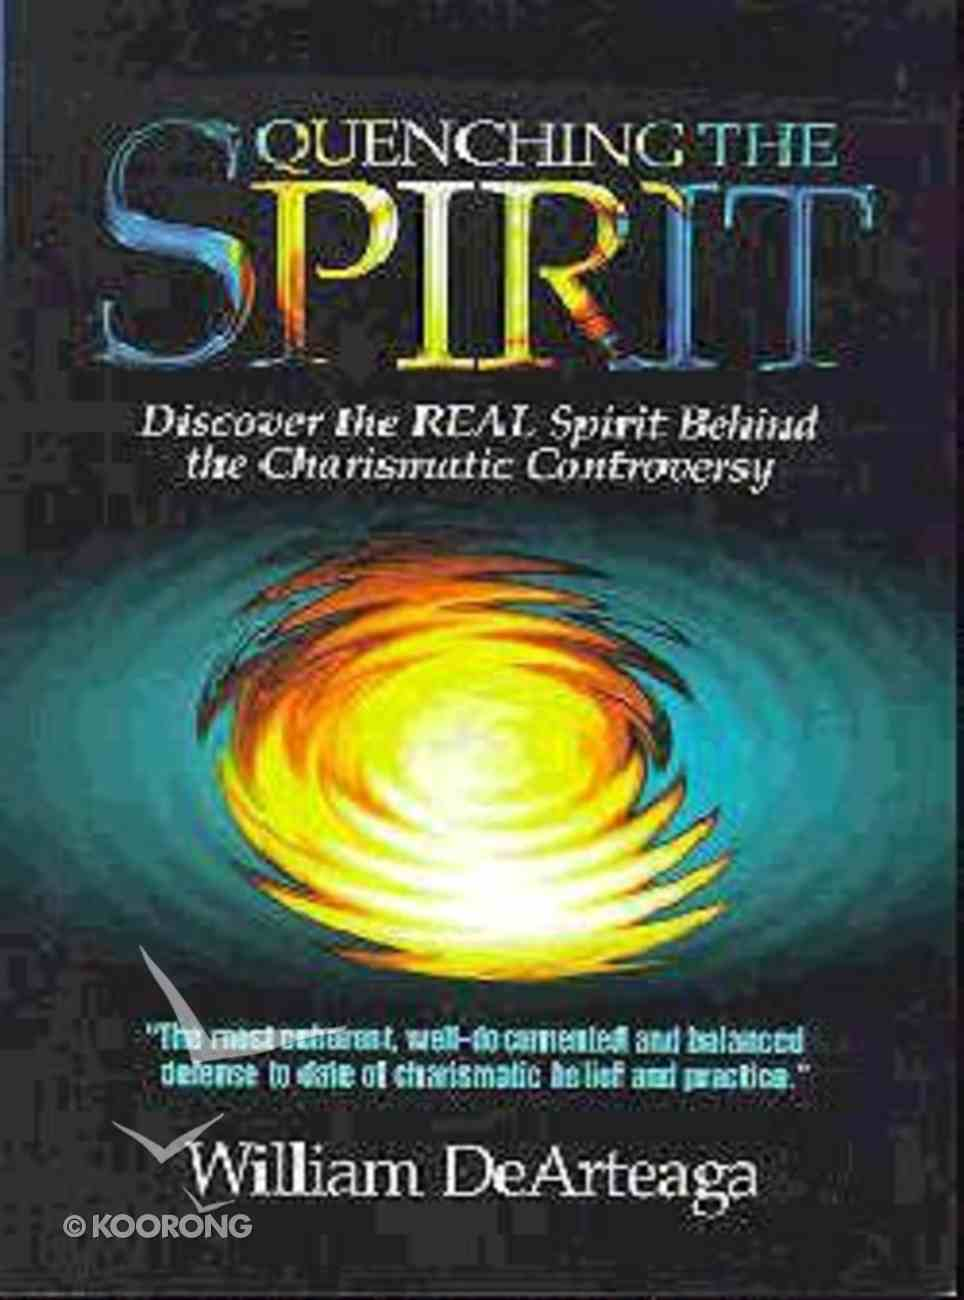 Quenching the Spirit Paperback